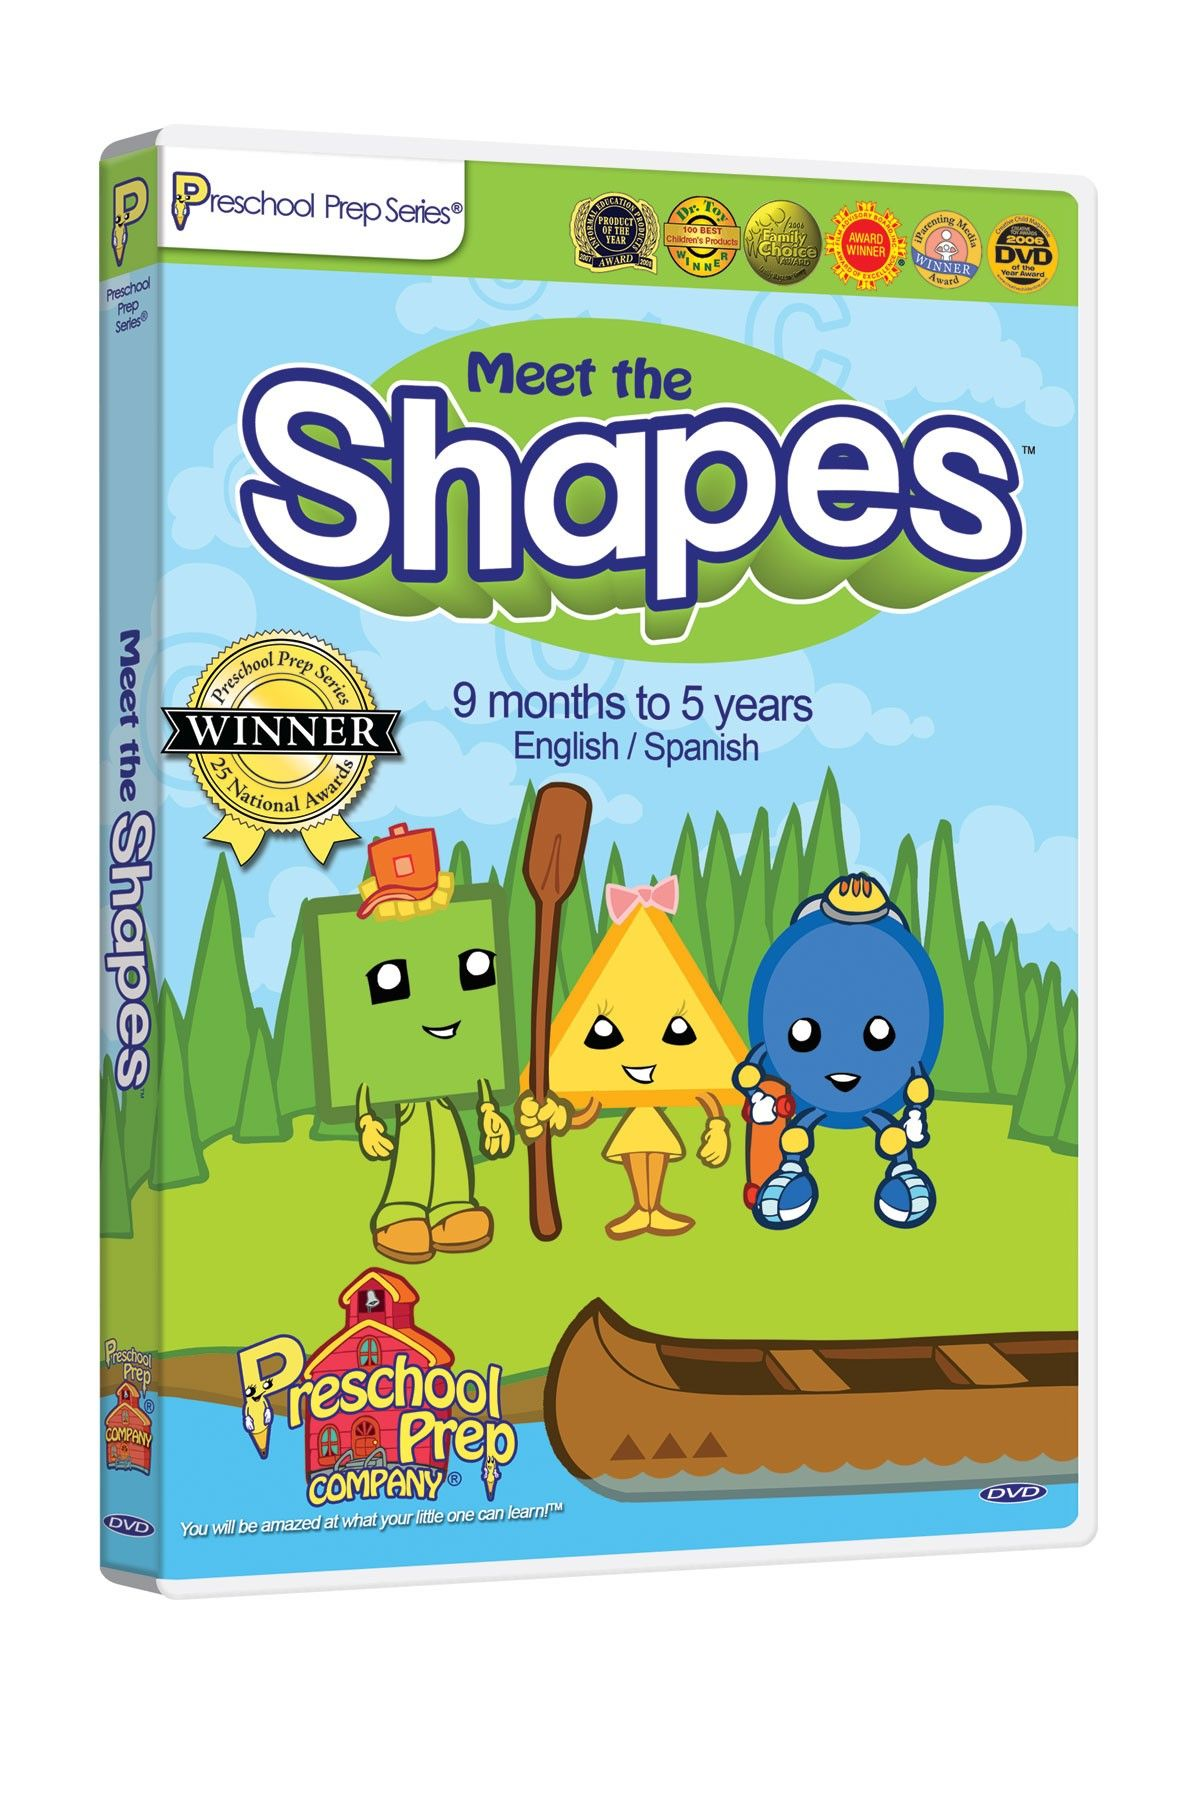 Preschool Prep Company Meet the Shapes DVD | Ajin | Pinterest ...